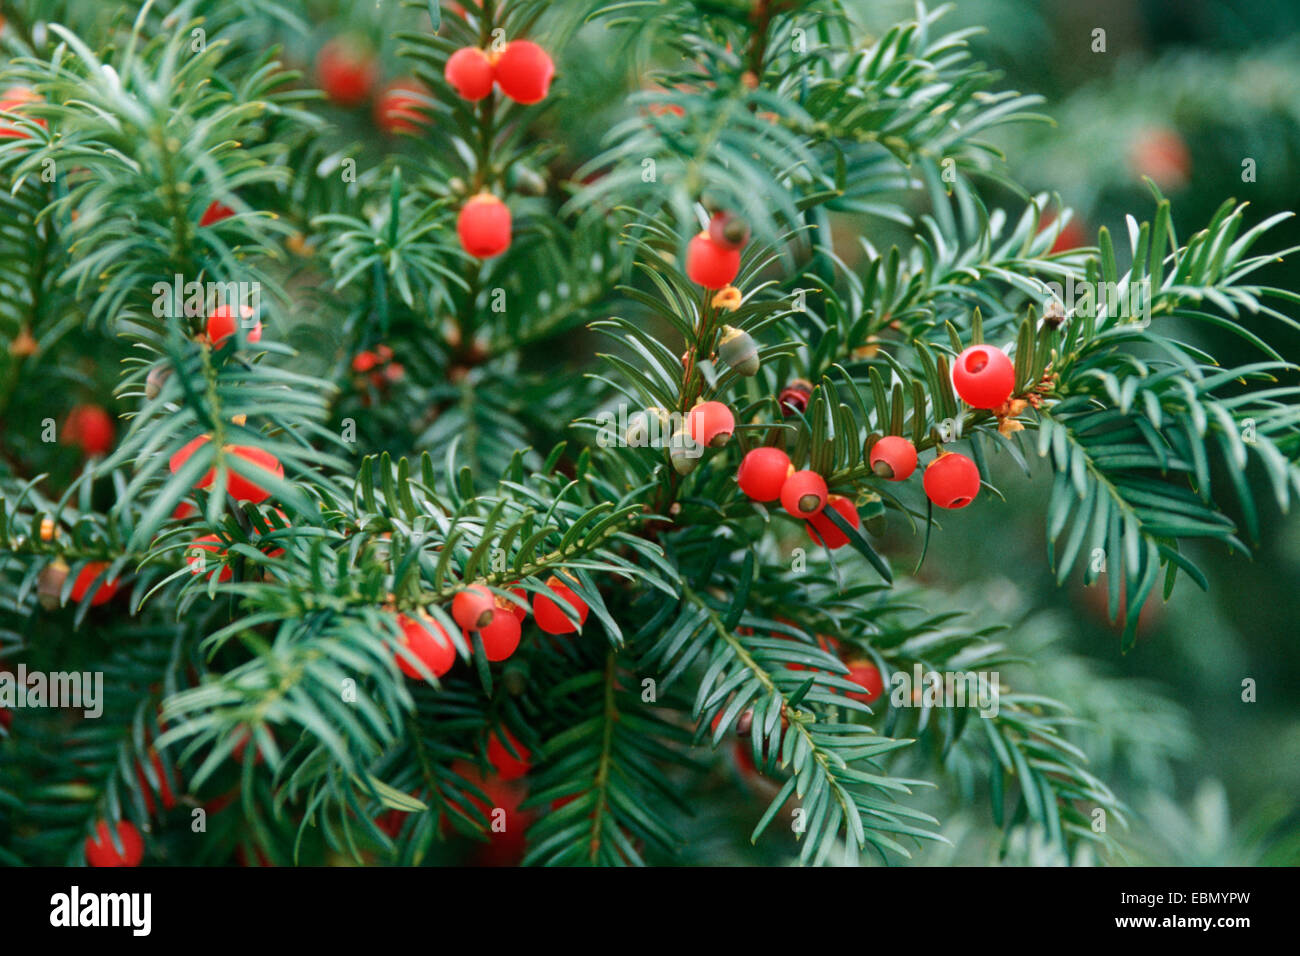 Common yew, English yew, European yew (Taxus baccata), with mature seeds - Stock Image